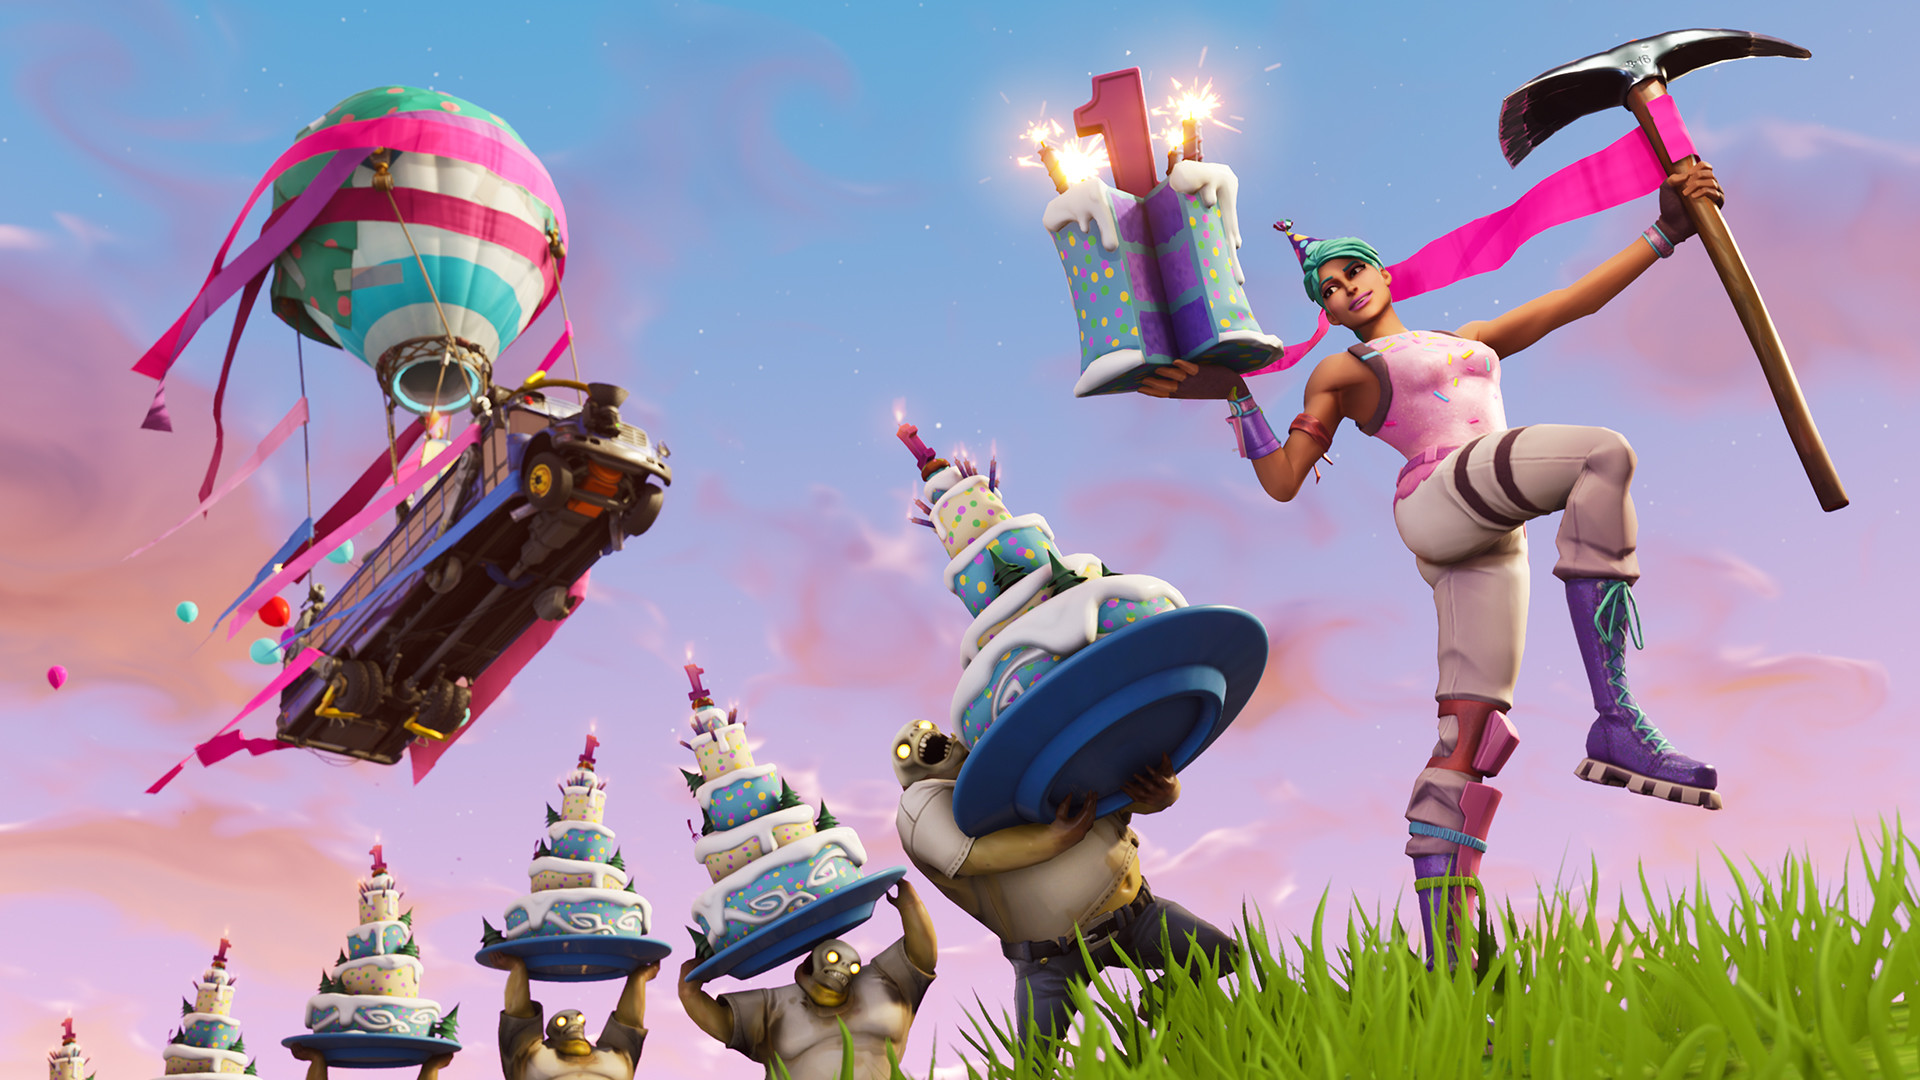 https://cdn.neow.in/news/images/uploaded/2018/07/1532117579_fortnite_anniversary.jpg